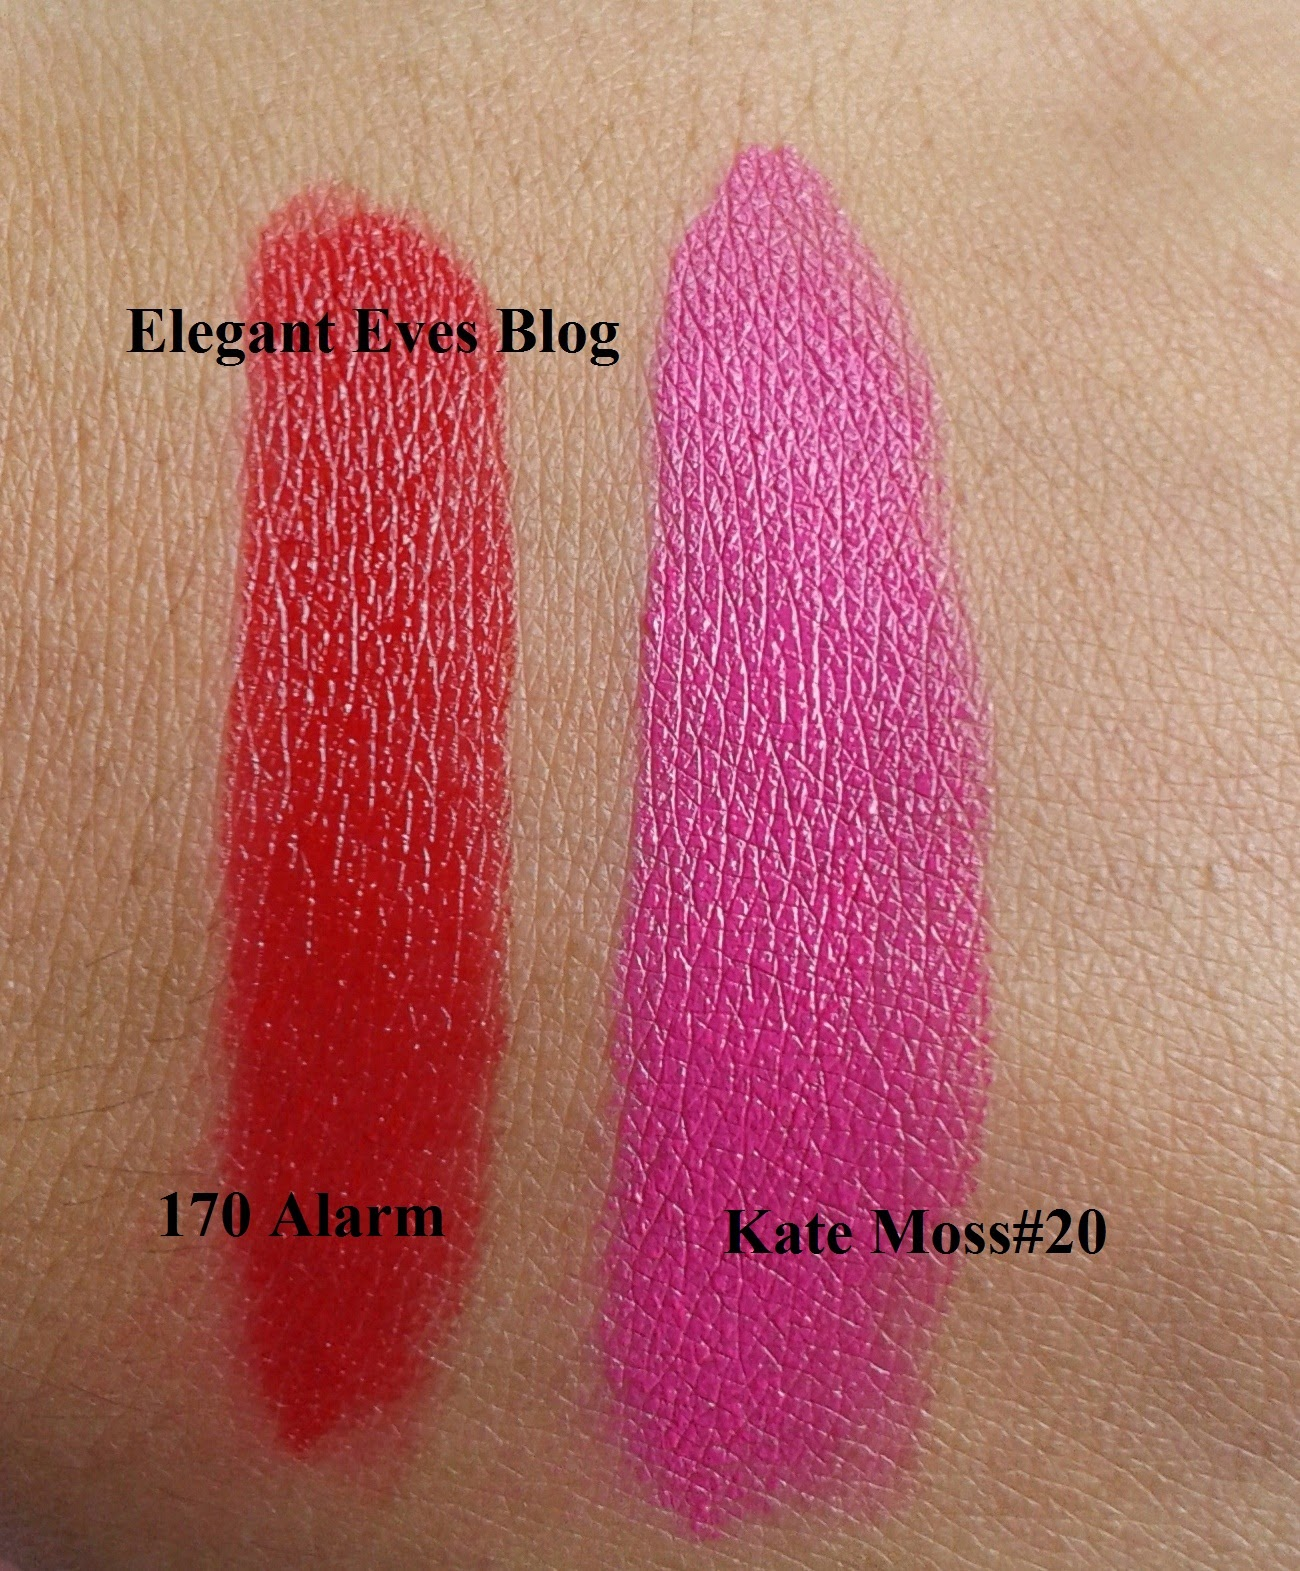 Rimmel London Lasting Finish Lipstick #170 Alarm & Kate Moss#20